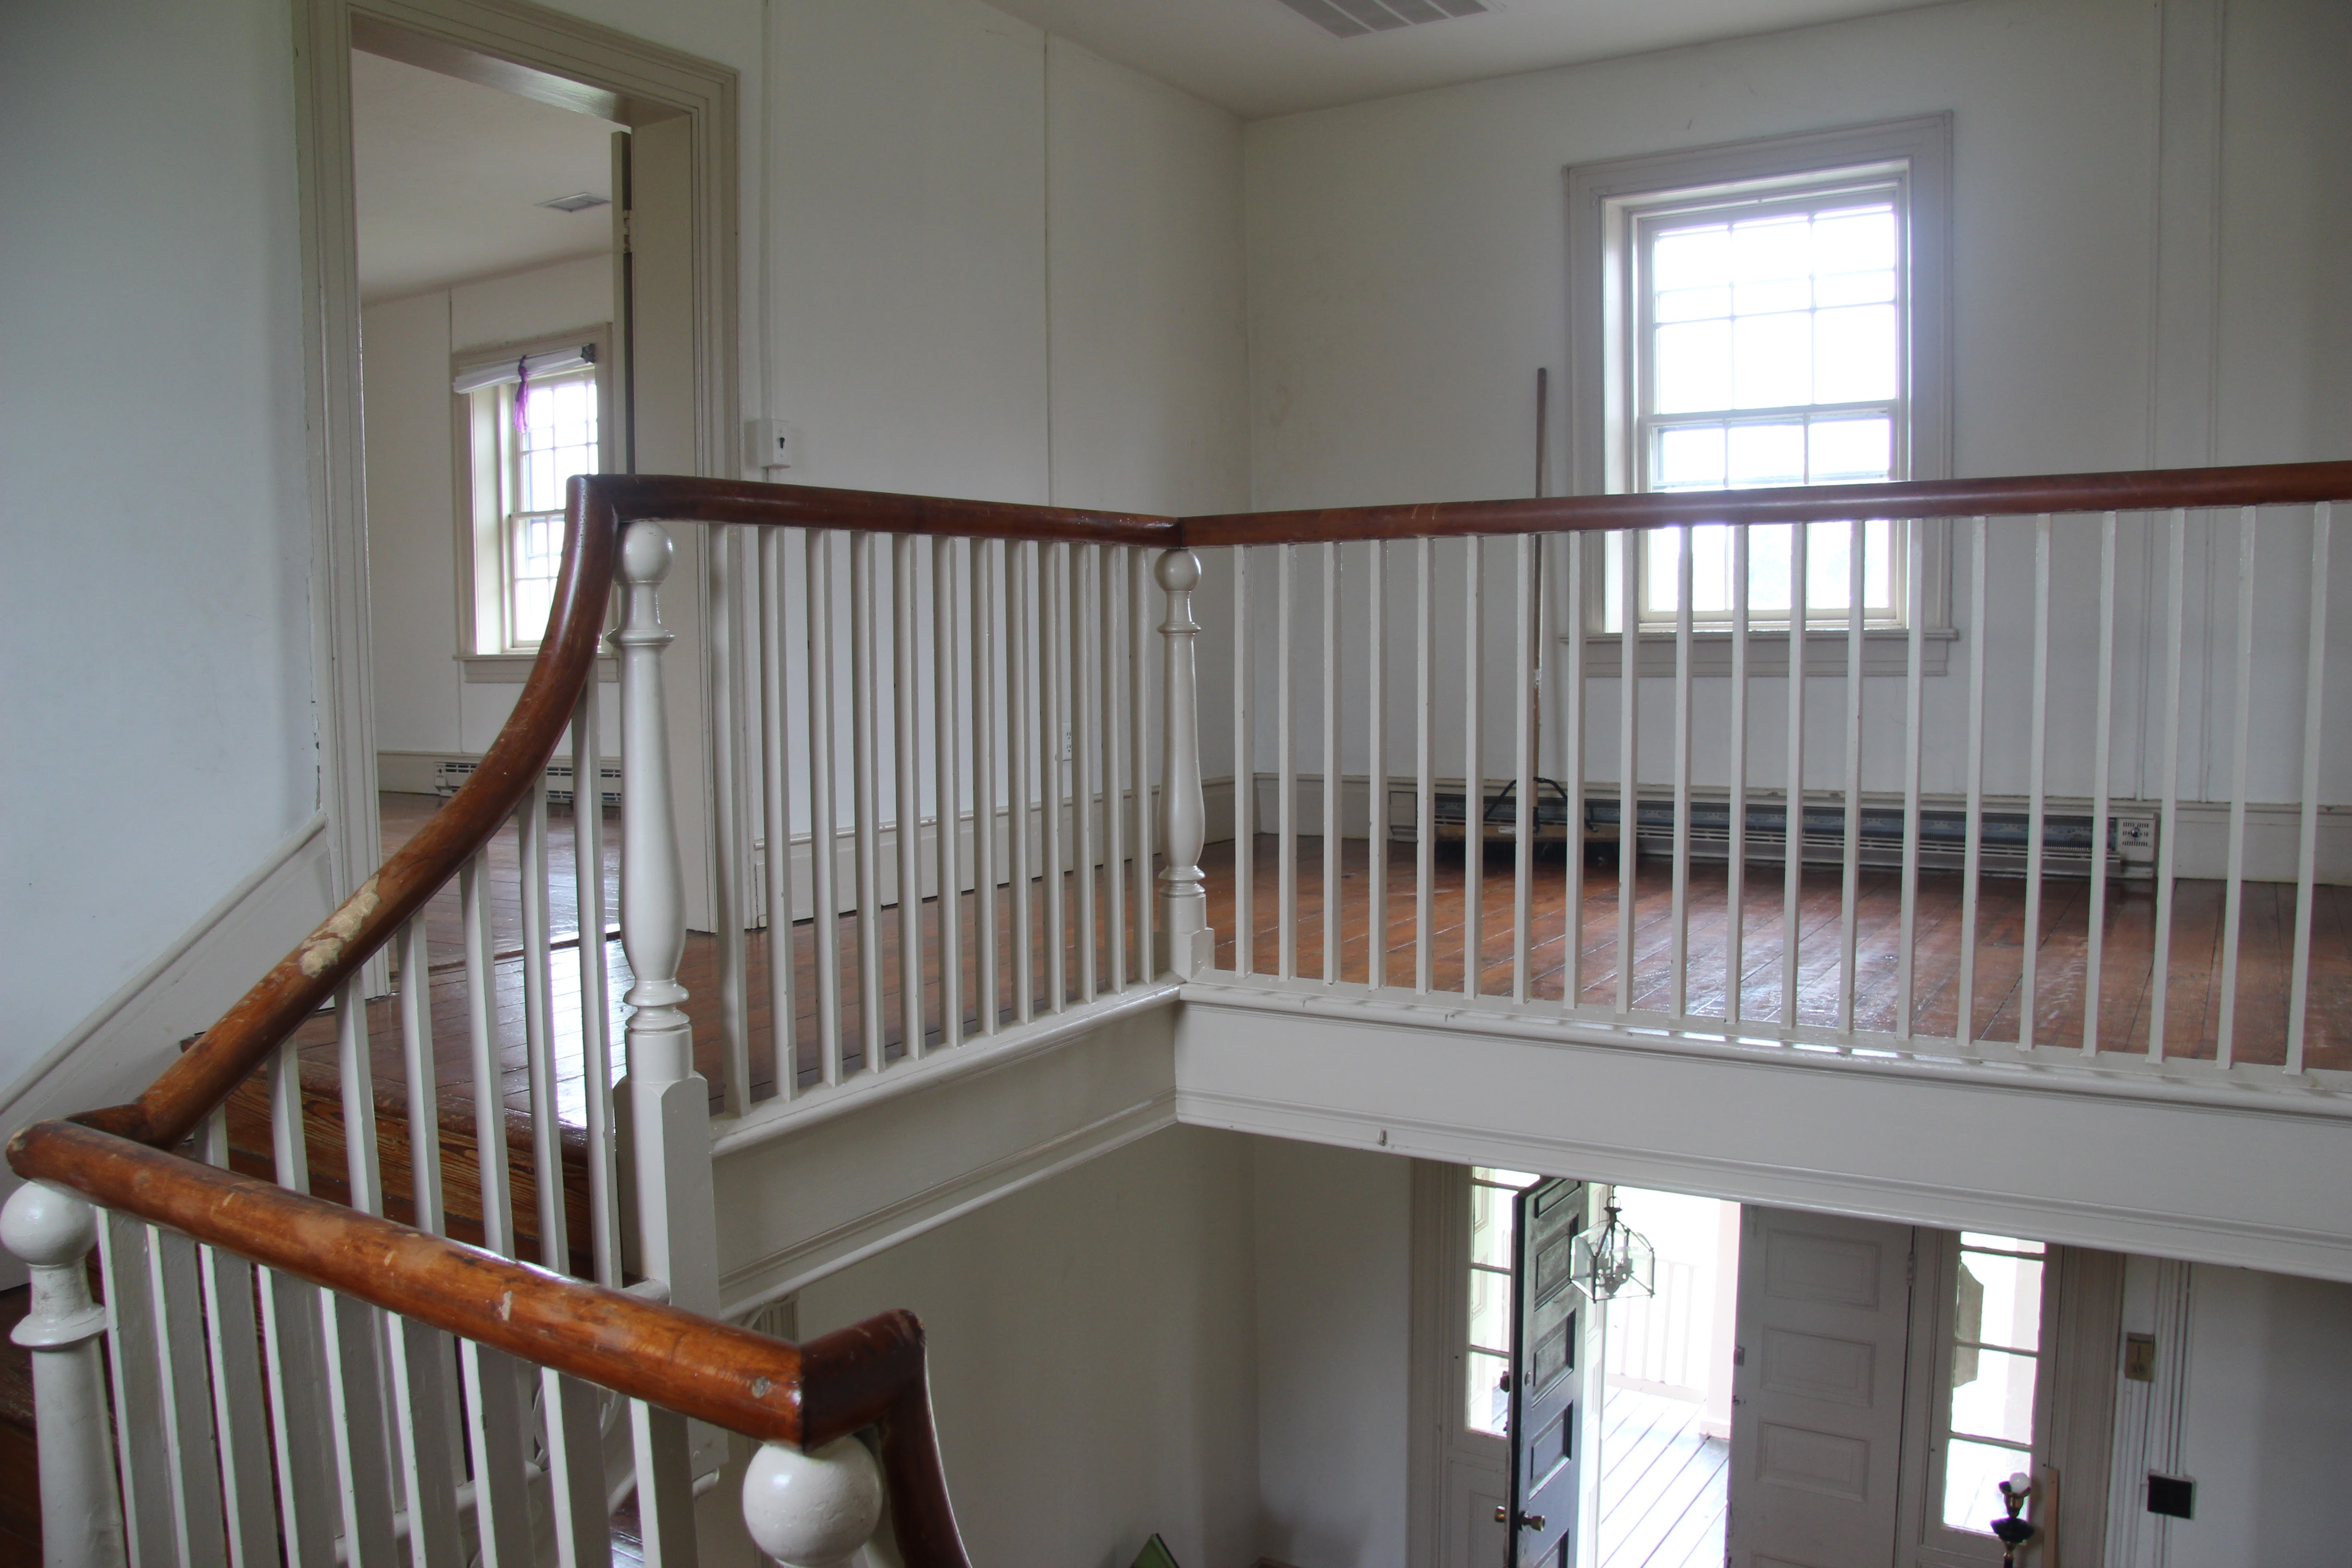 Stairway to Upstairs